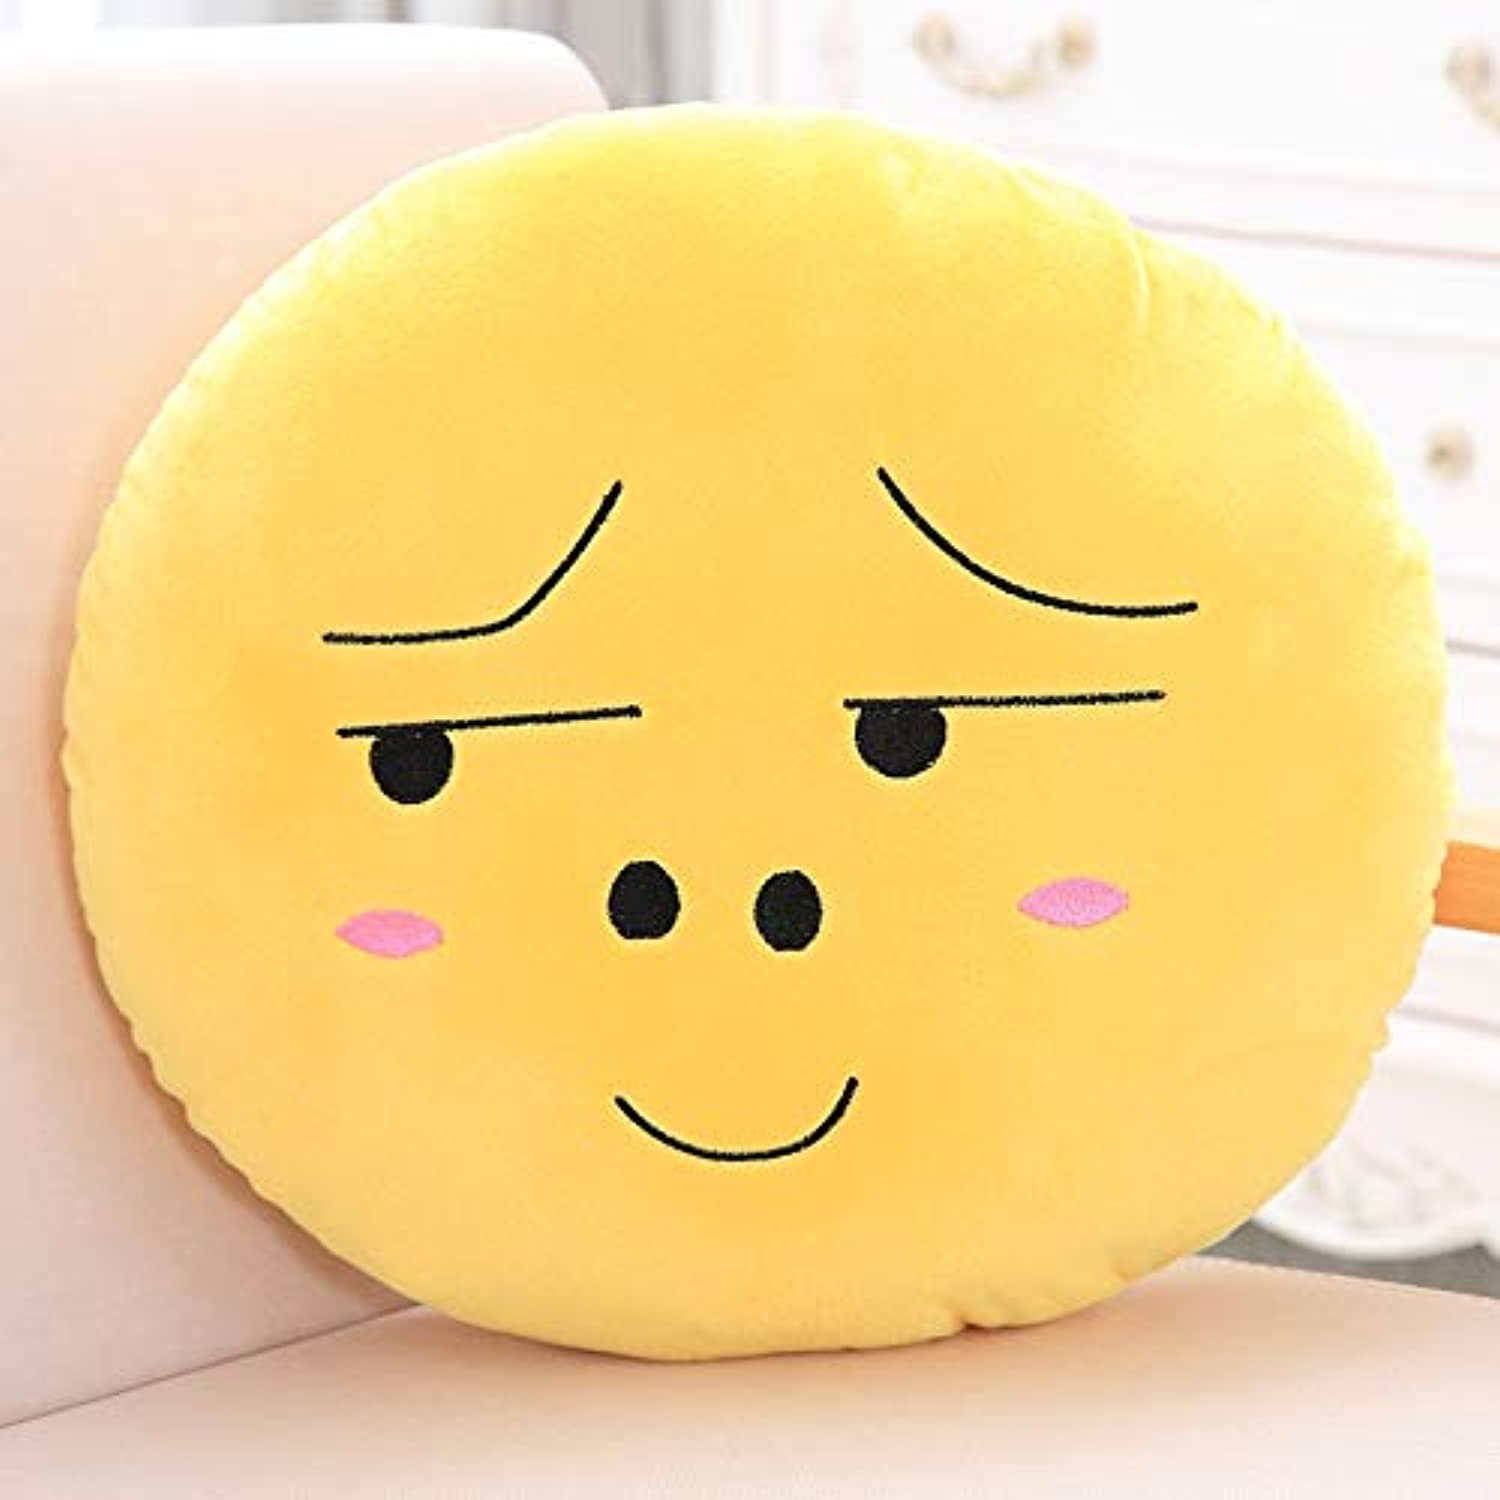 Mangege Emoticons Cartoon Pillow Quilt Dual Use Nap Three In One Blanket Funny Fear Face Cushion Pillow Large Blanket (11.6m) Base, look.